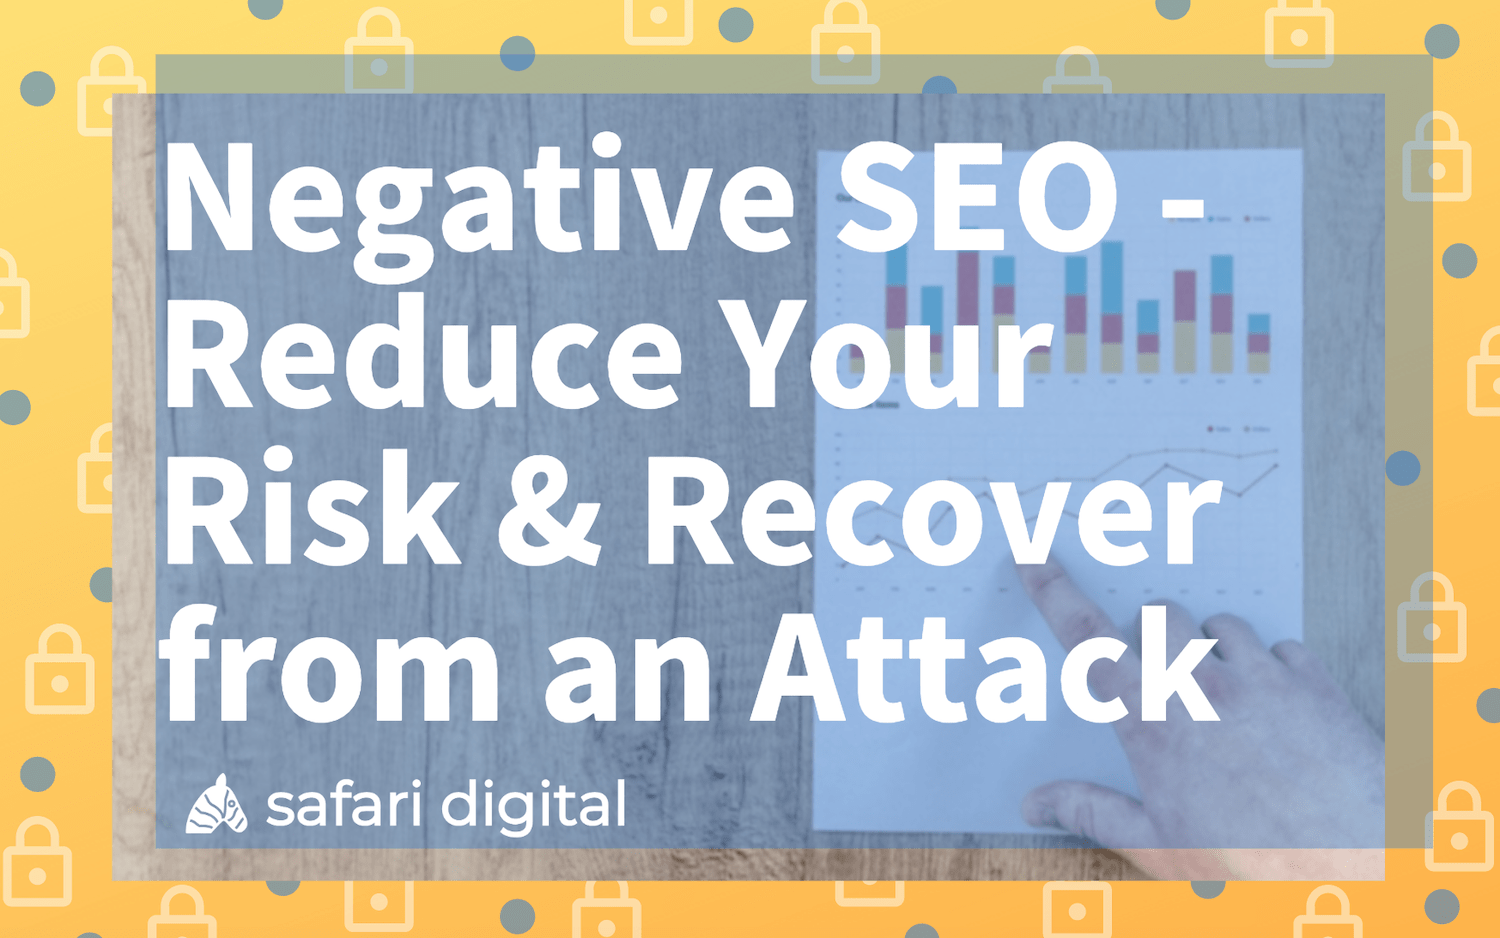 Negative SEO - reduce your risk & recover from an attack banner image Large